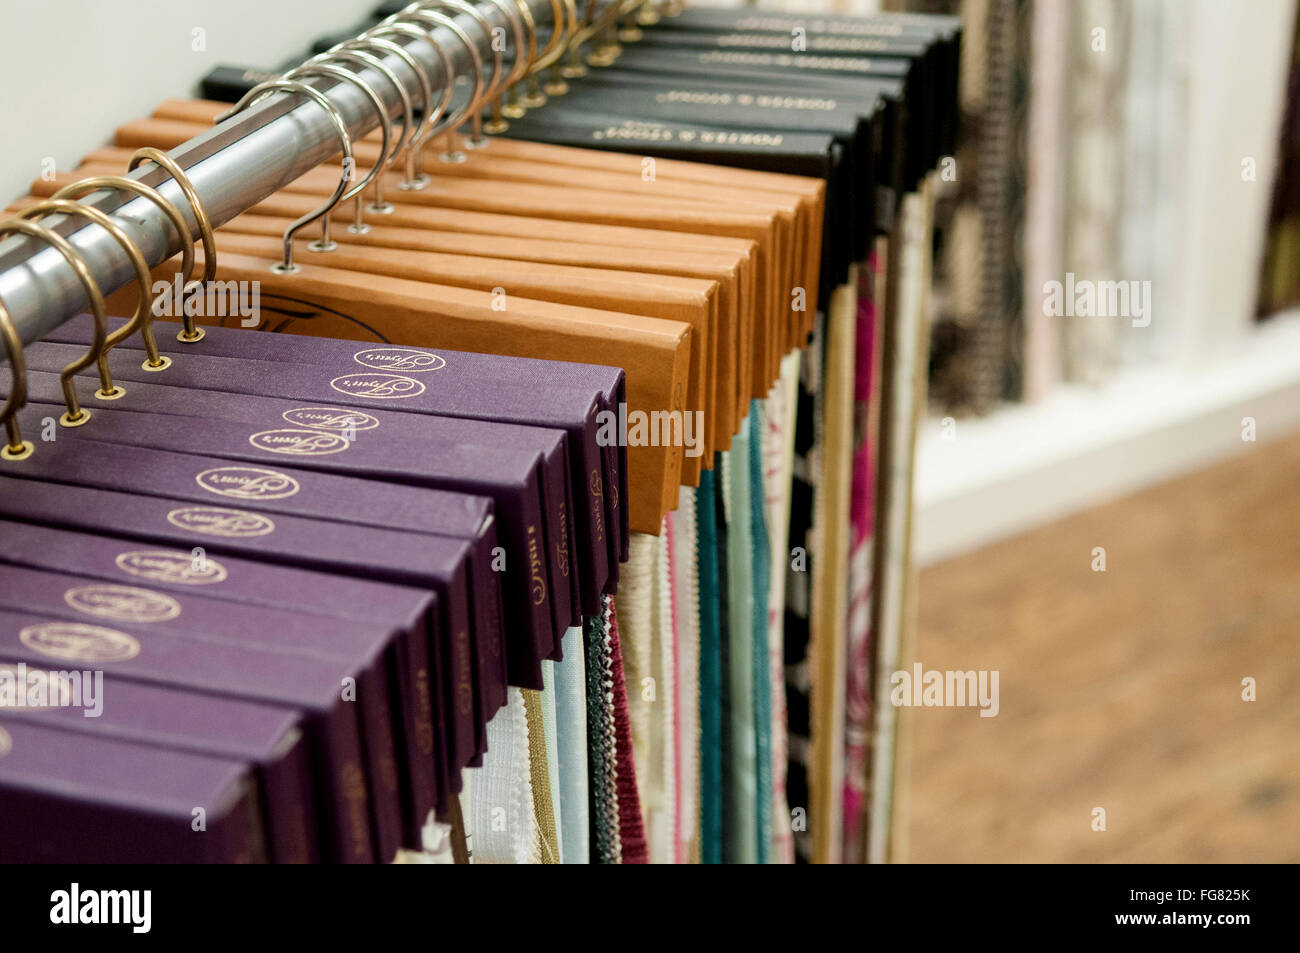 Books Of Curtain Fabric Swatches On Display In A Store